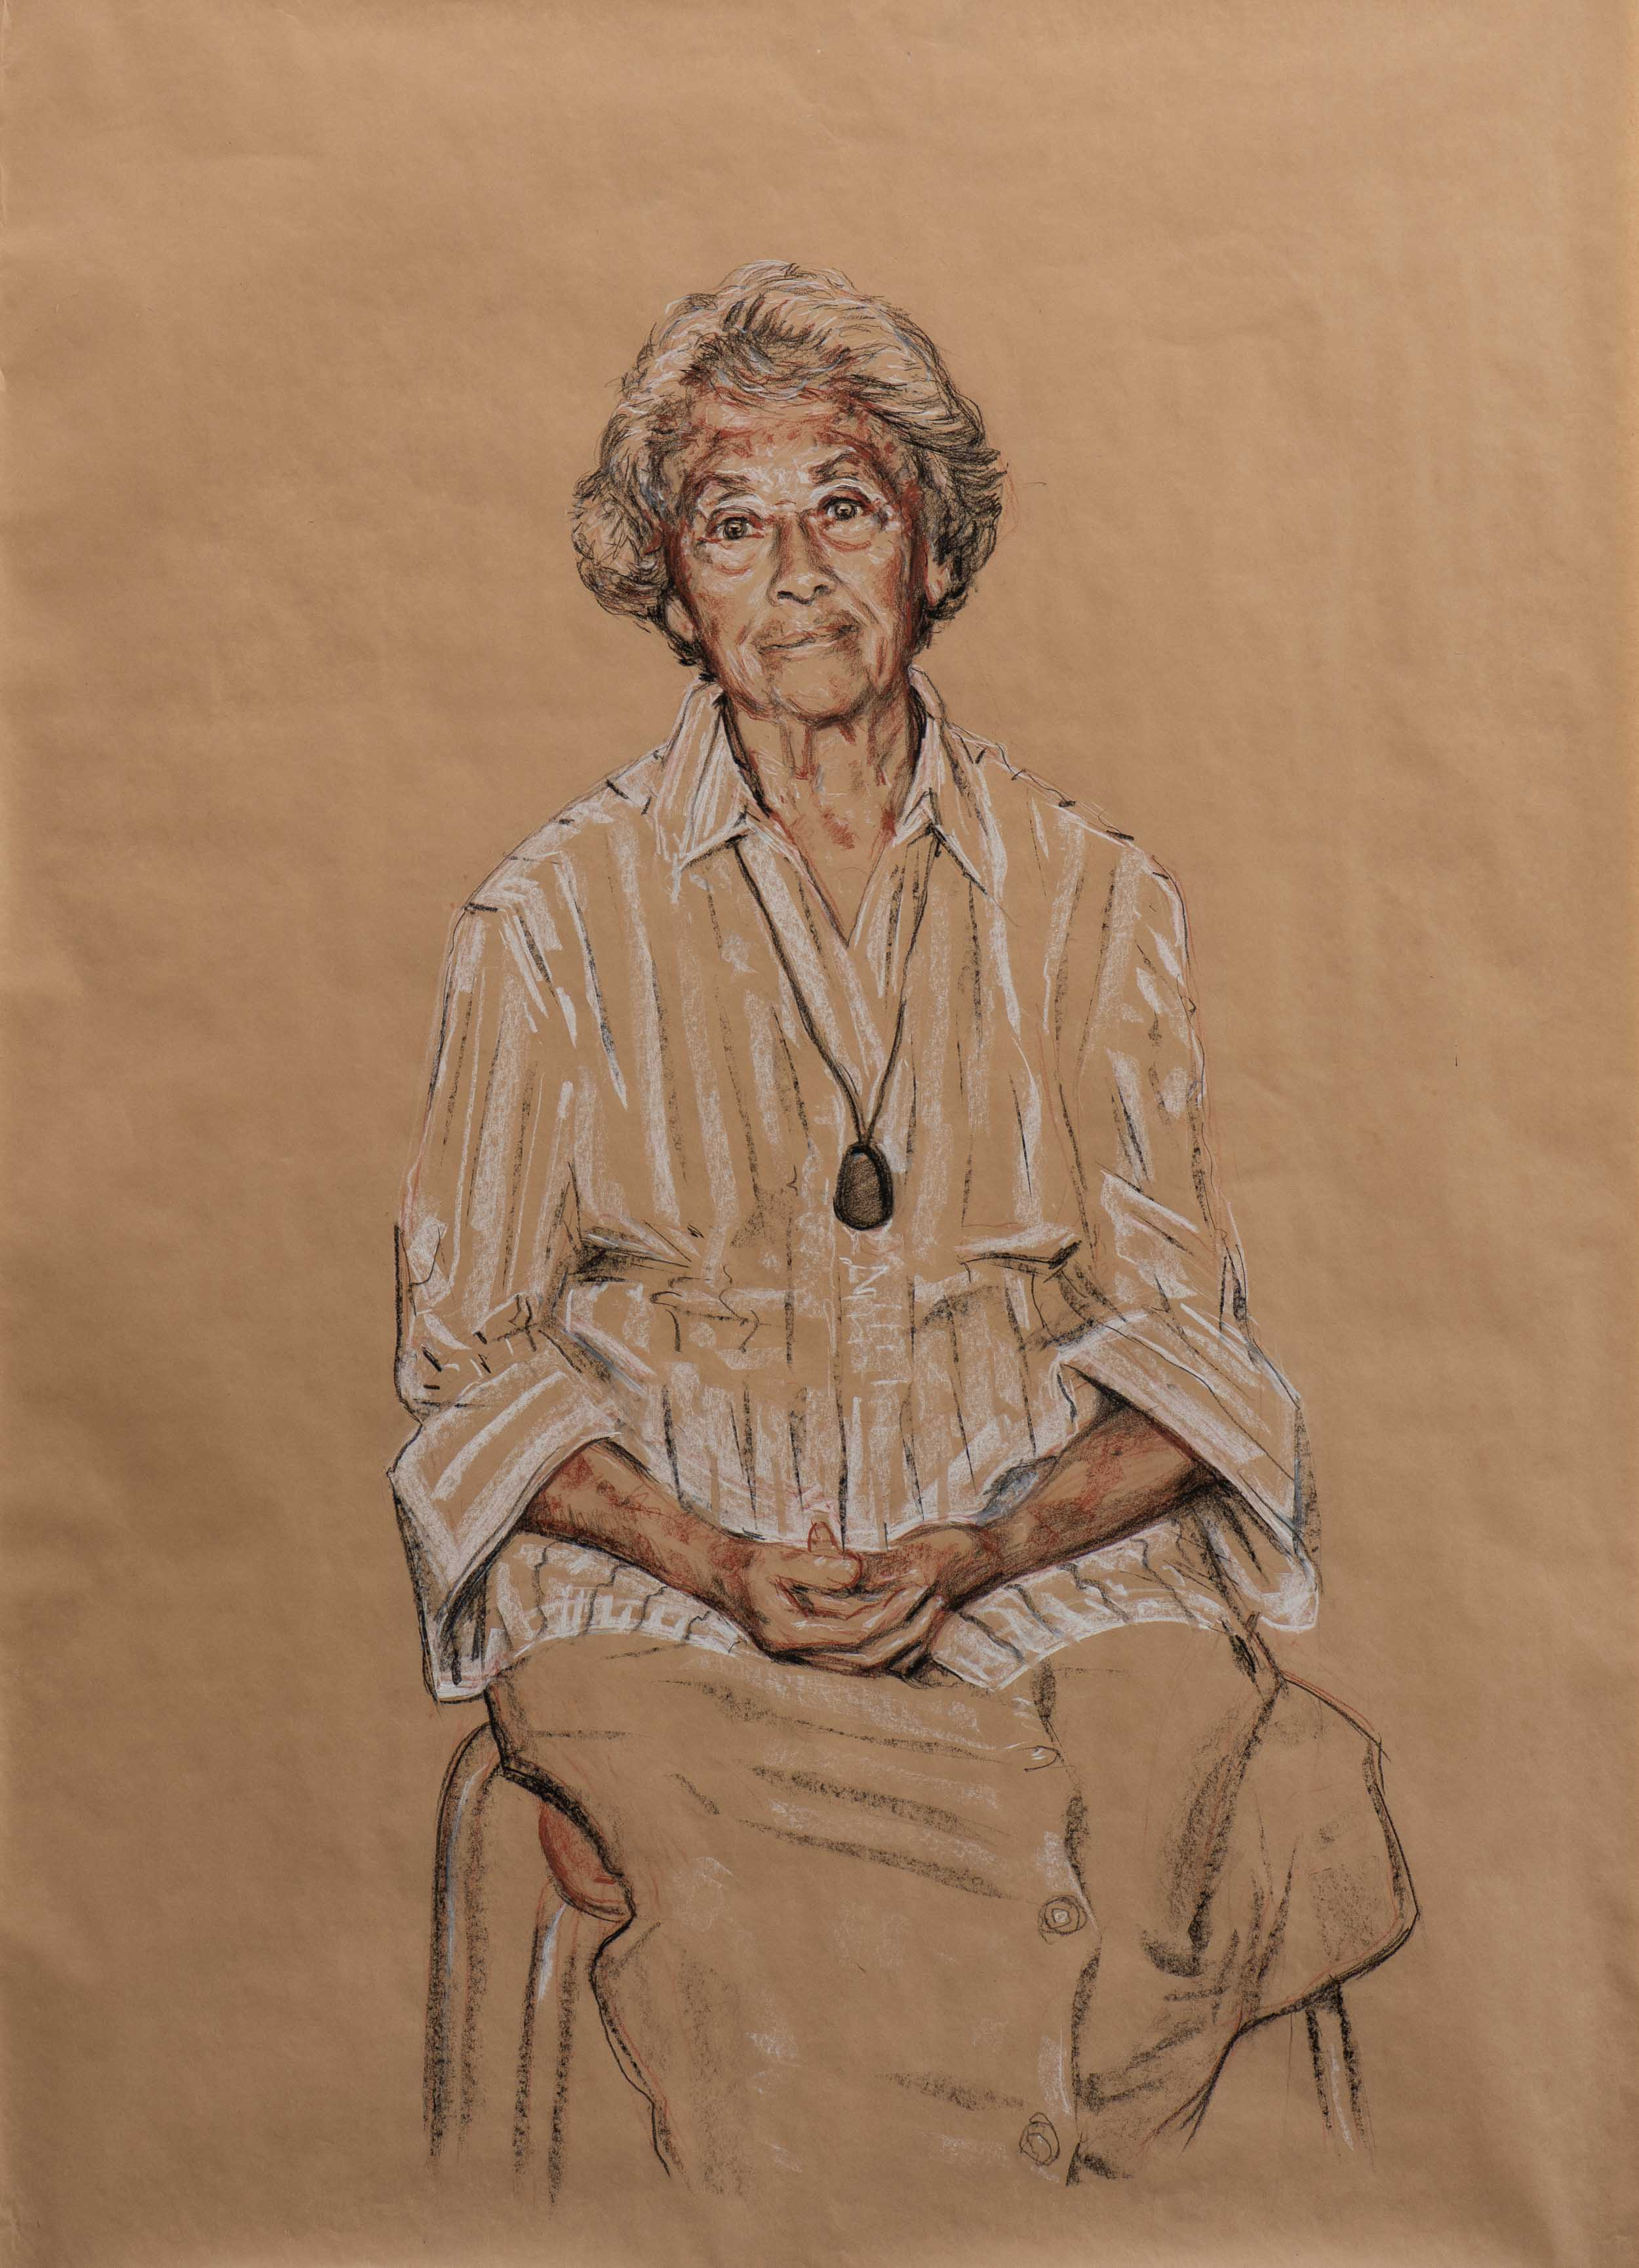 Aunty Mary King (study, 2010) - 127x91cm, Conte on brown paper